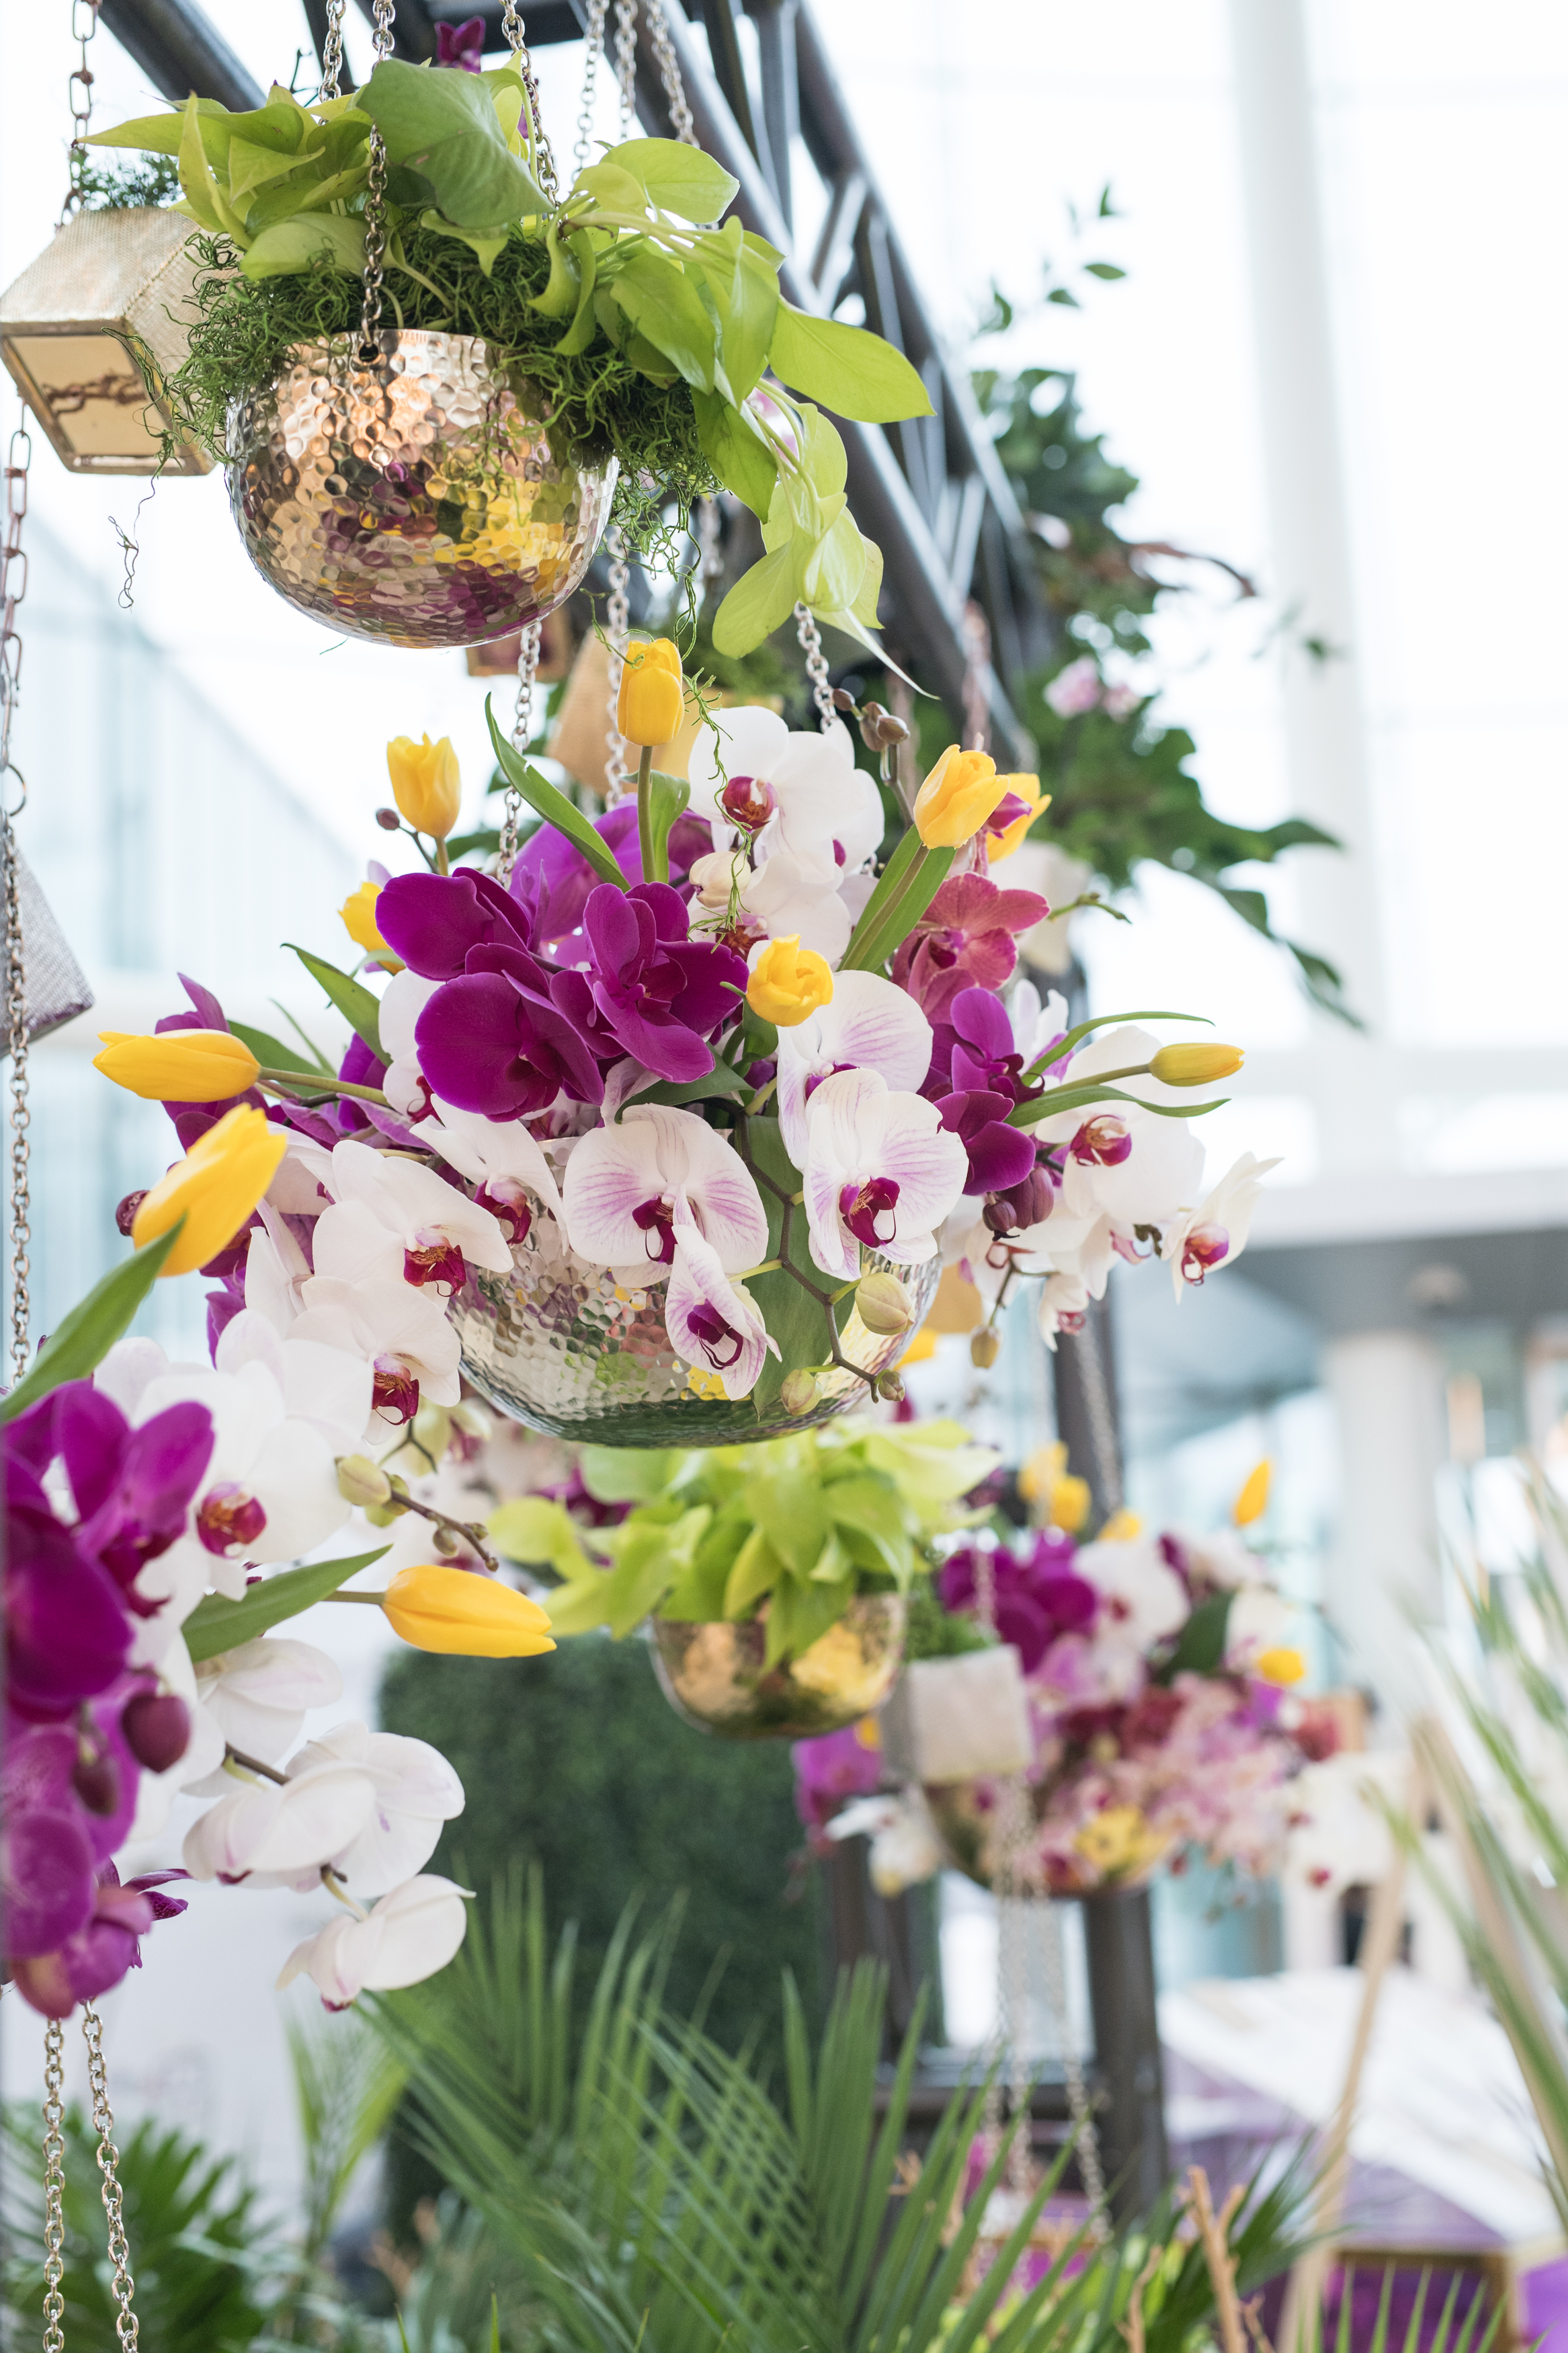 August In Bloom - Orchid and lily flower pots - #SQ1Bridal (Square One Shopping Centre)